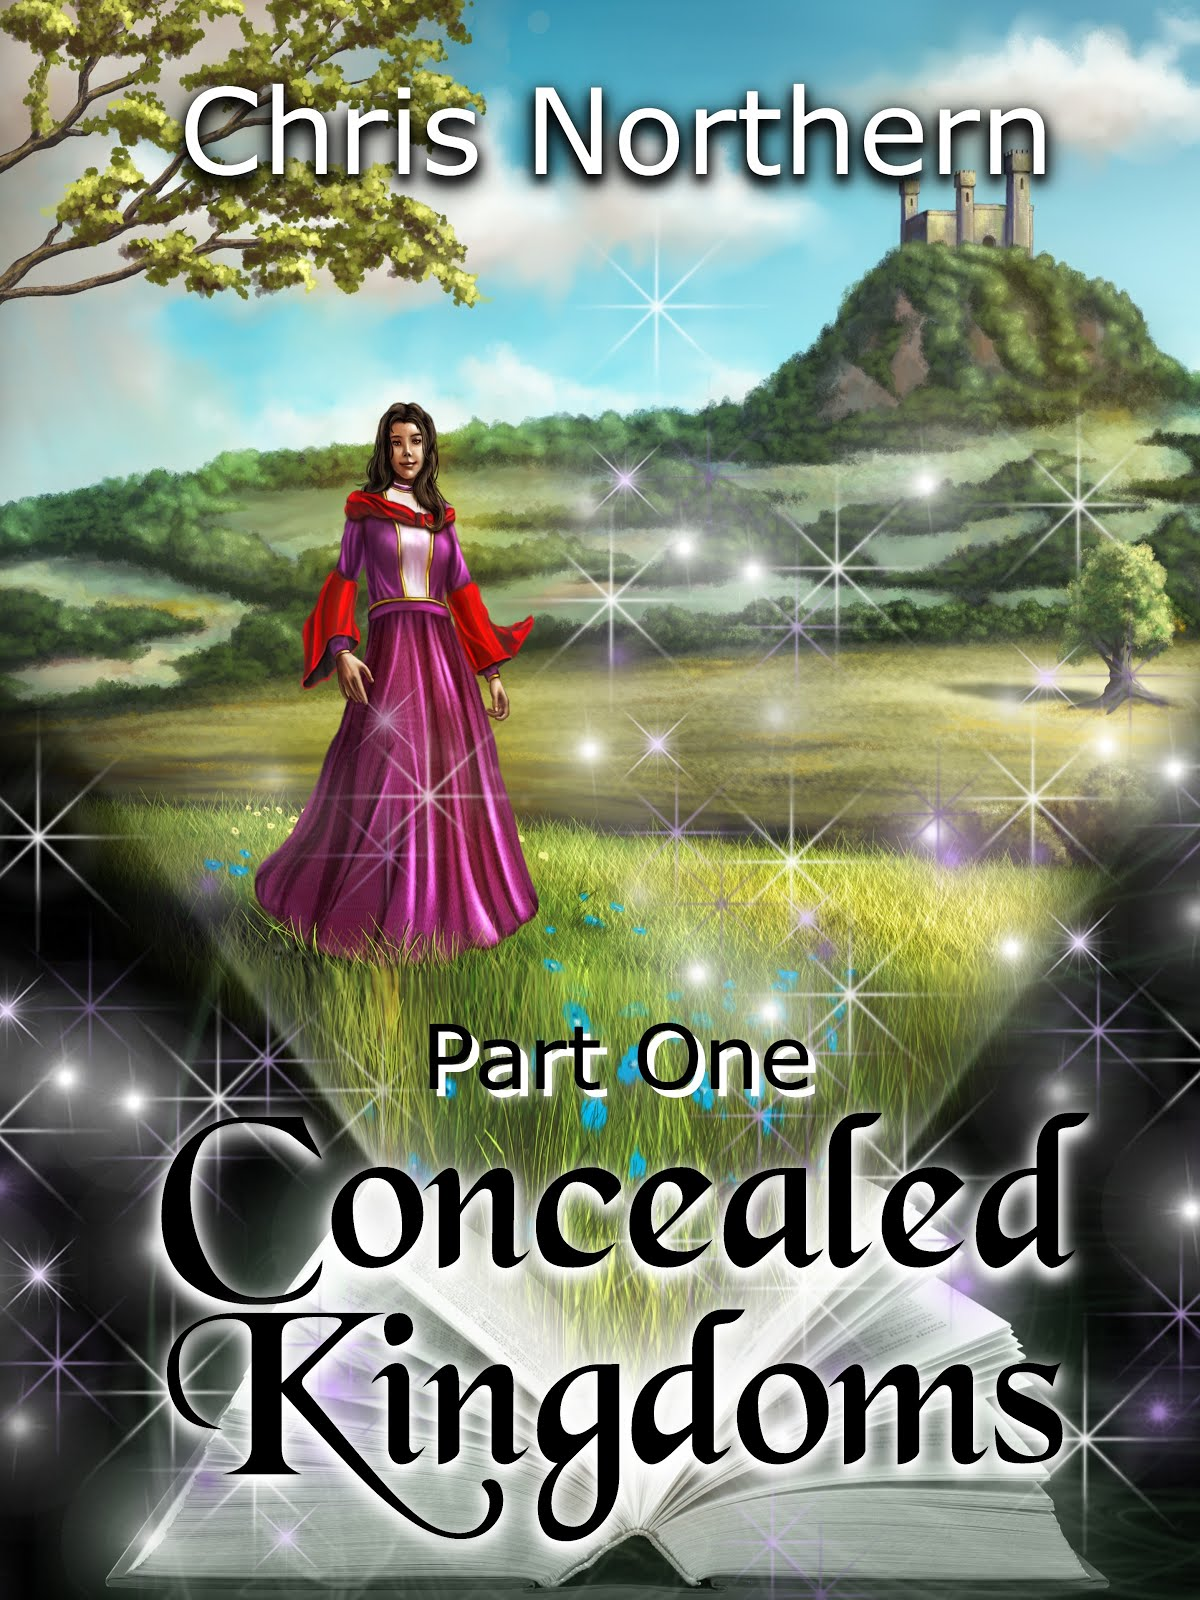 Concealed Kingdoms: The Serial